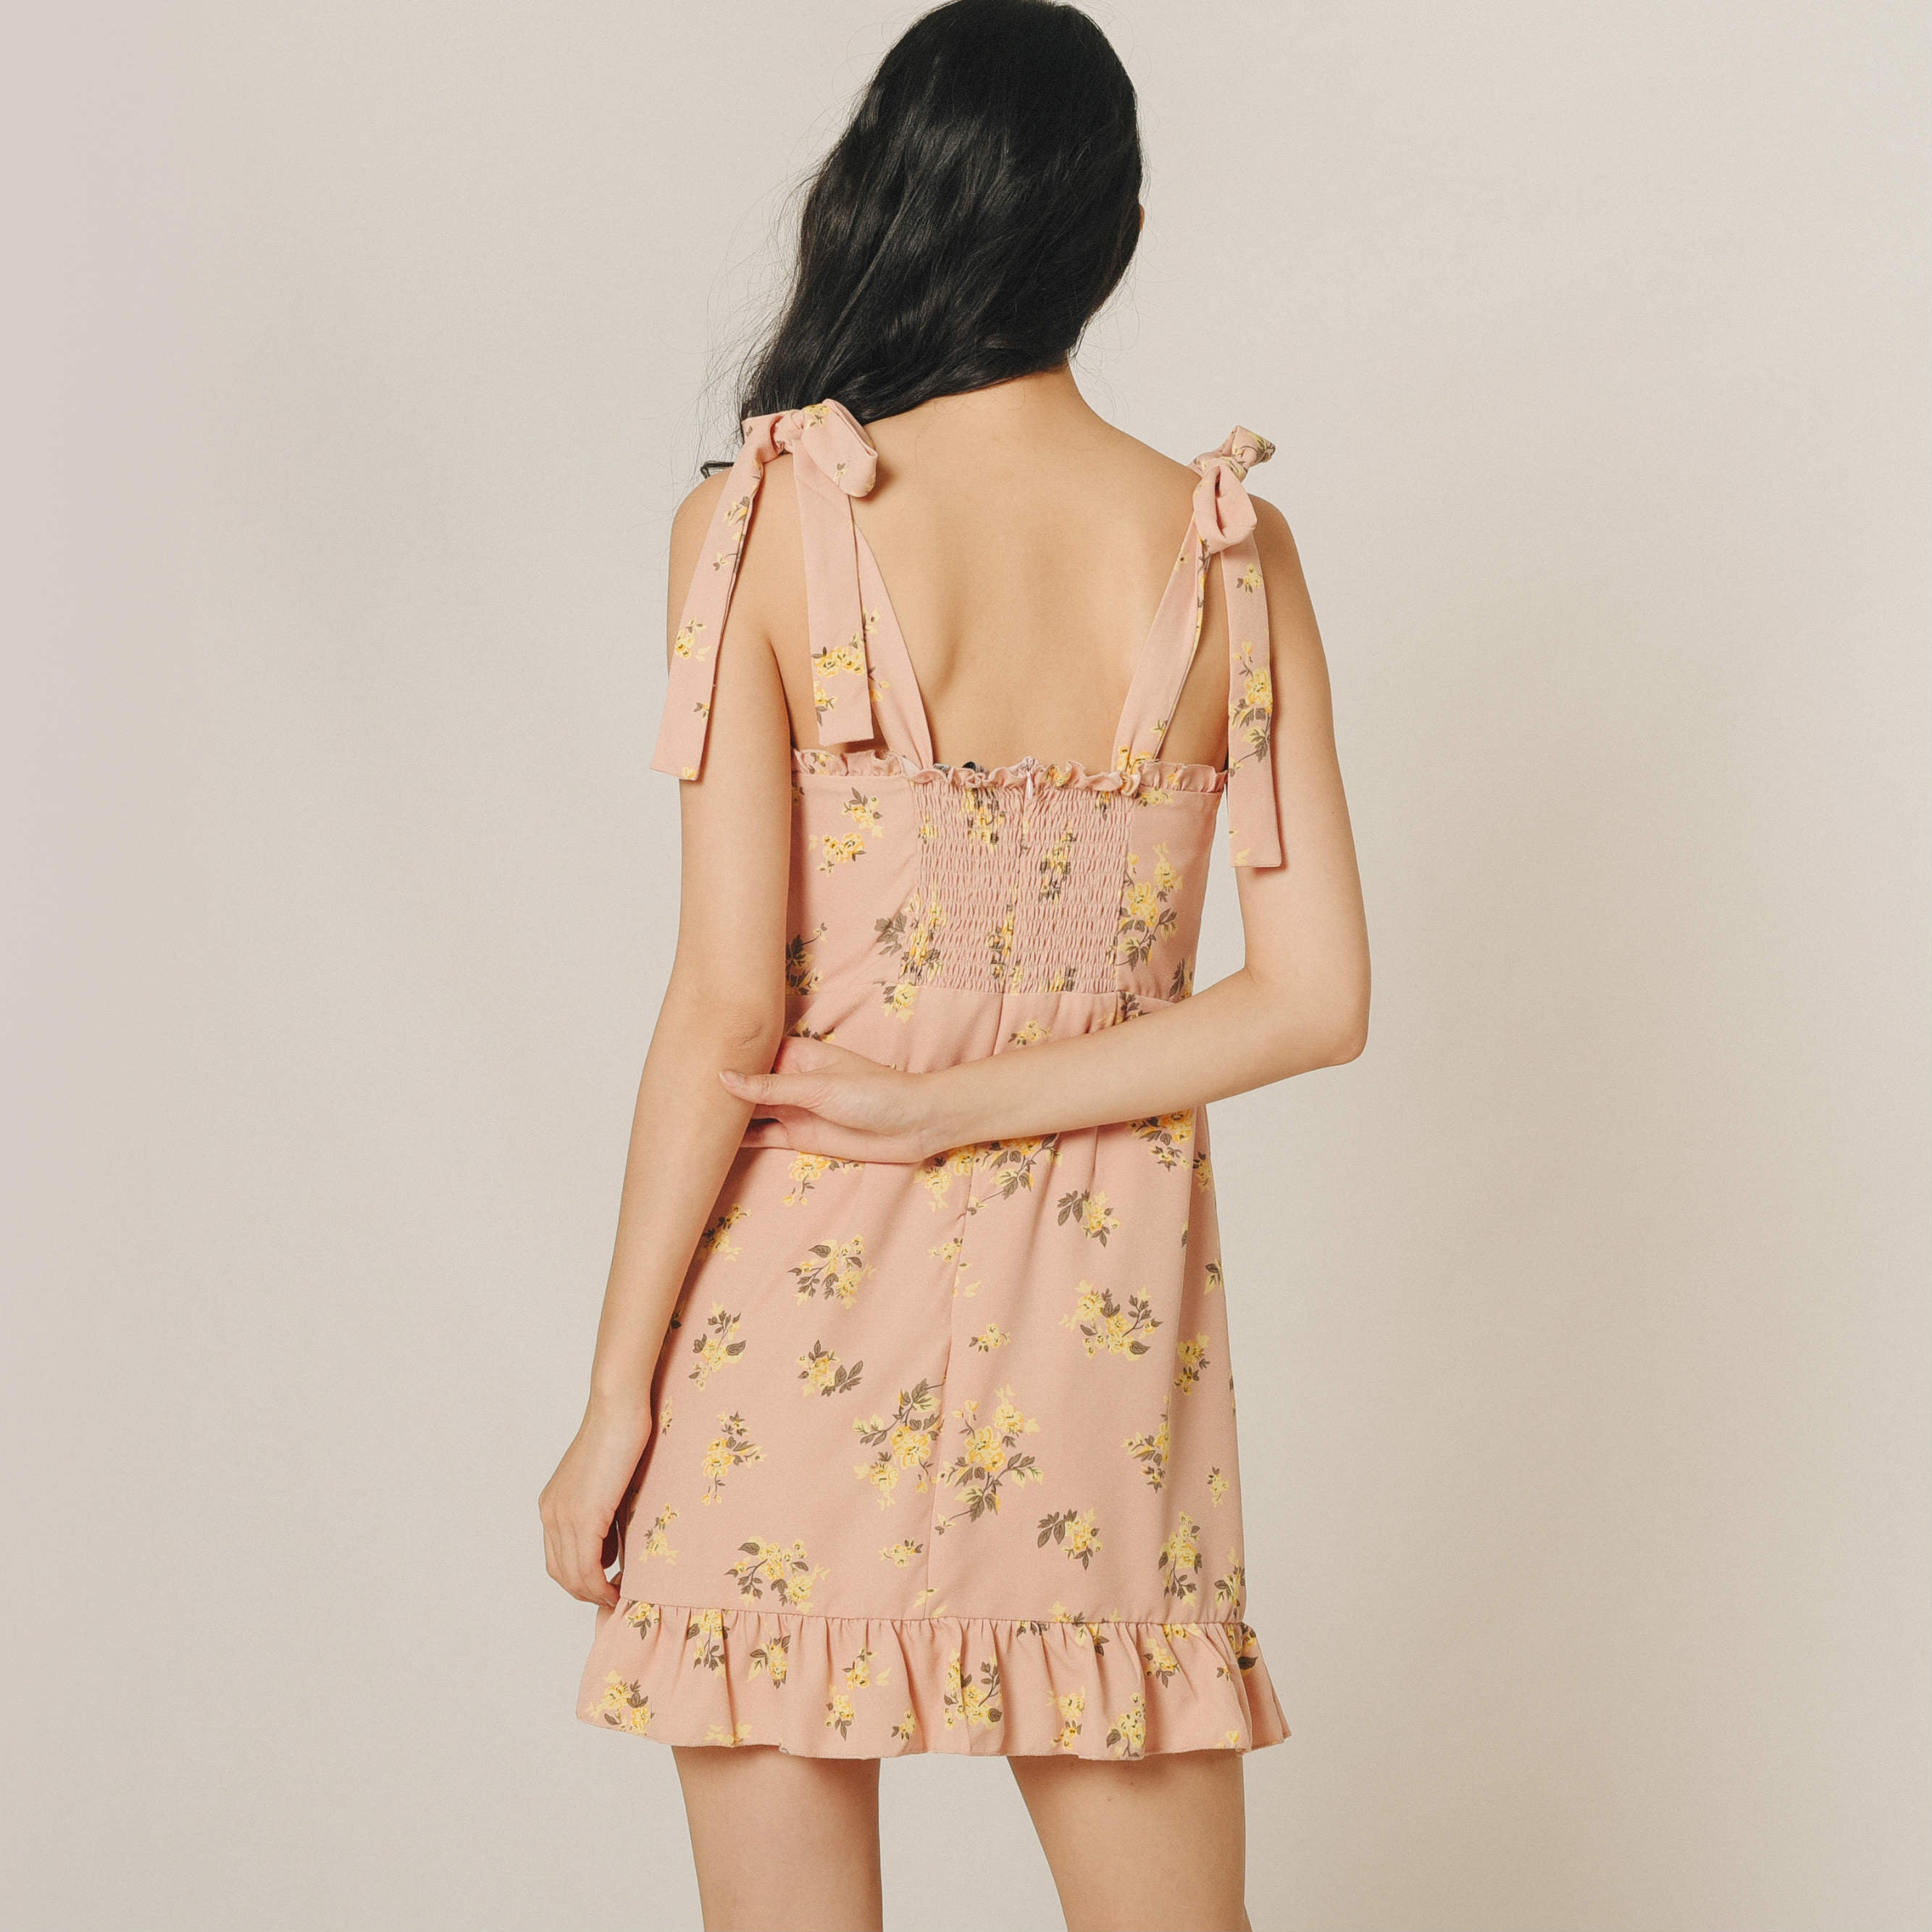 Theory Print Tie Dress